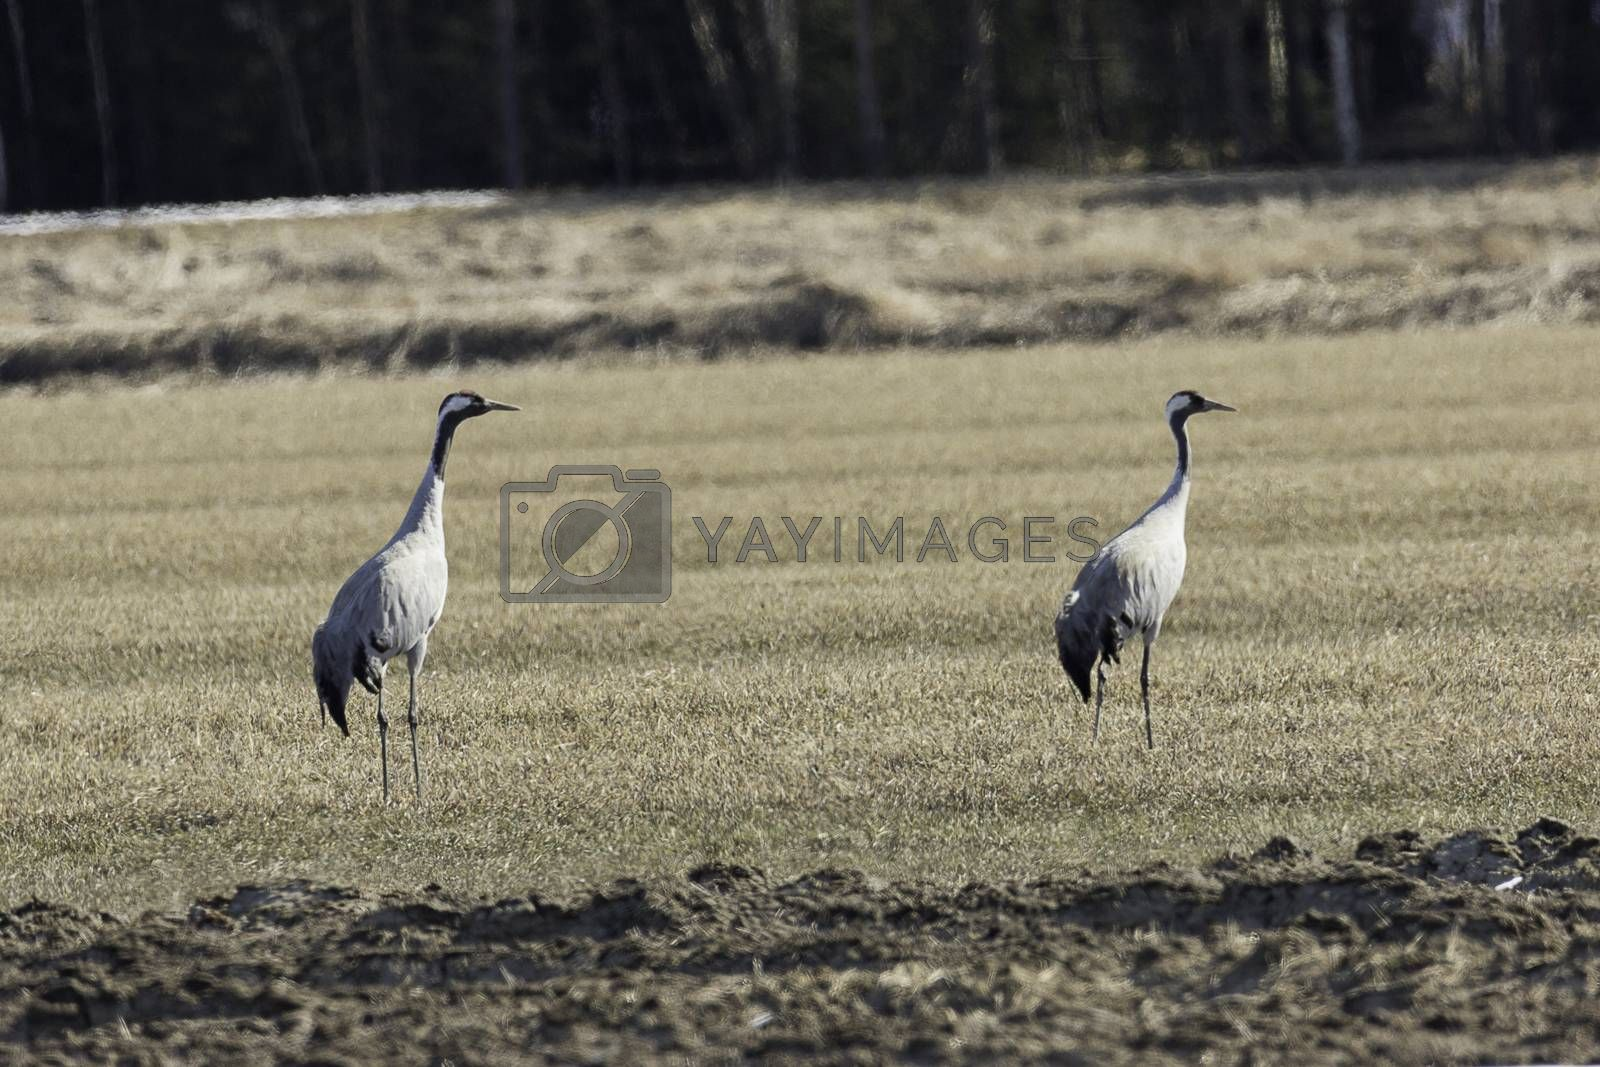 Common Cranes in Cultivated Field.